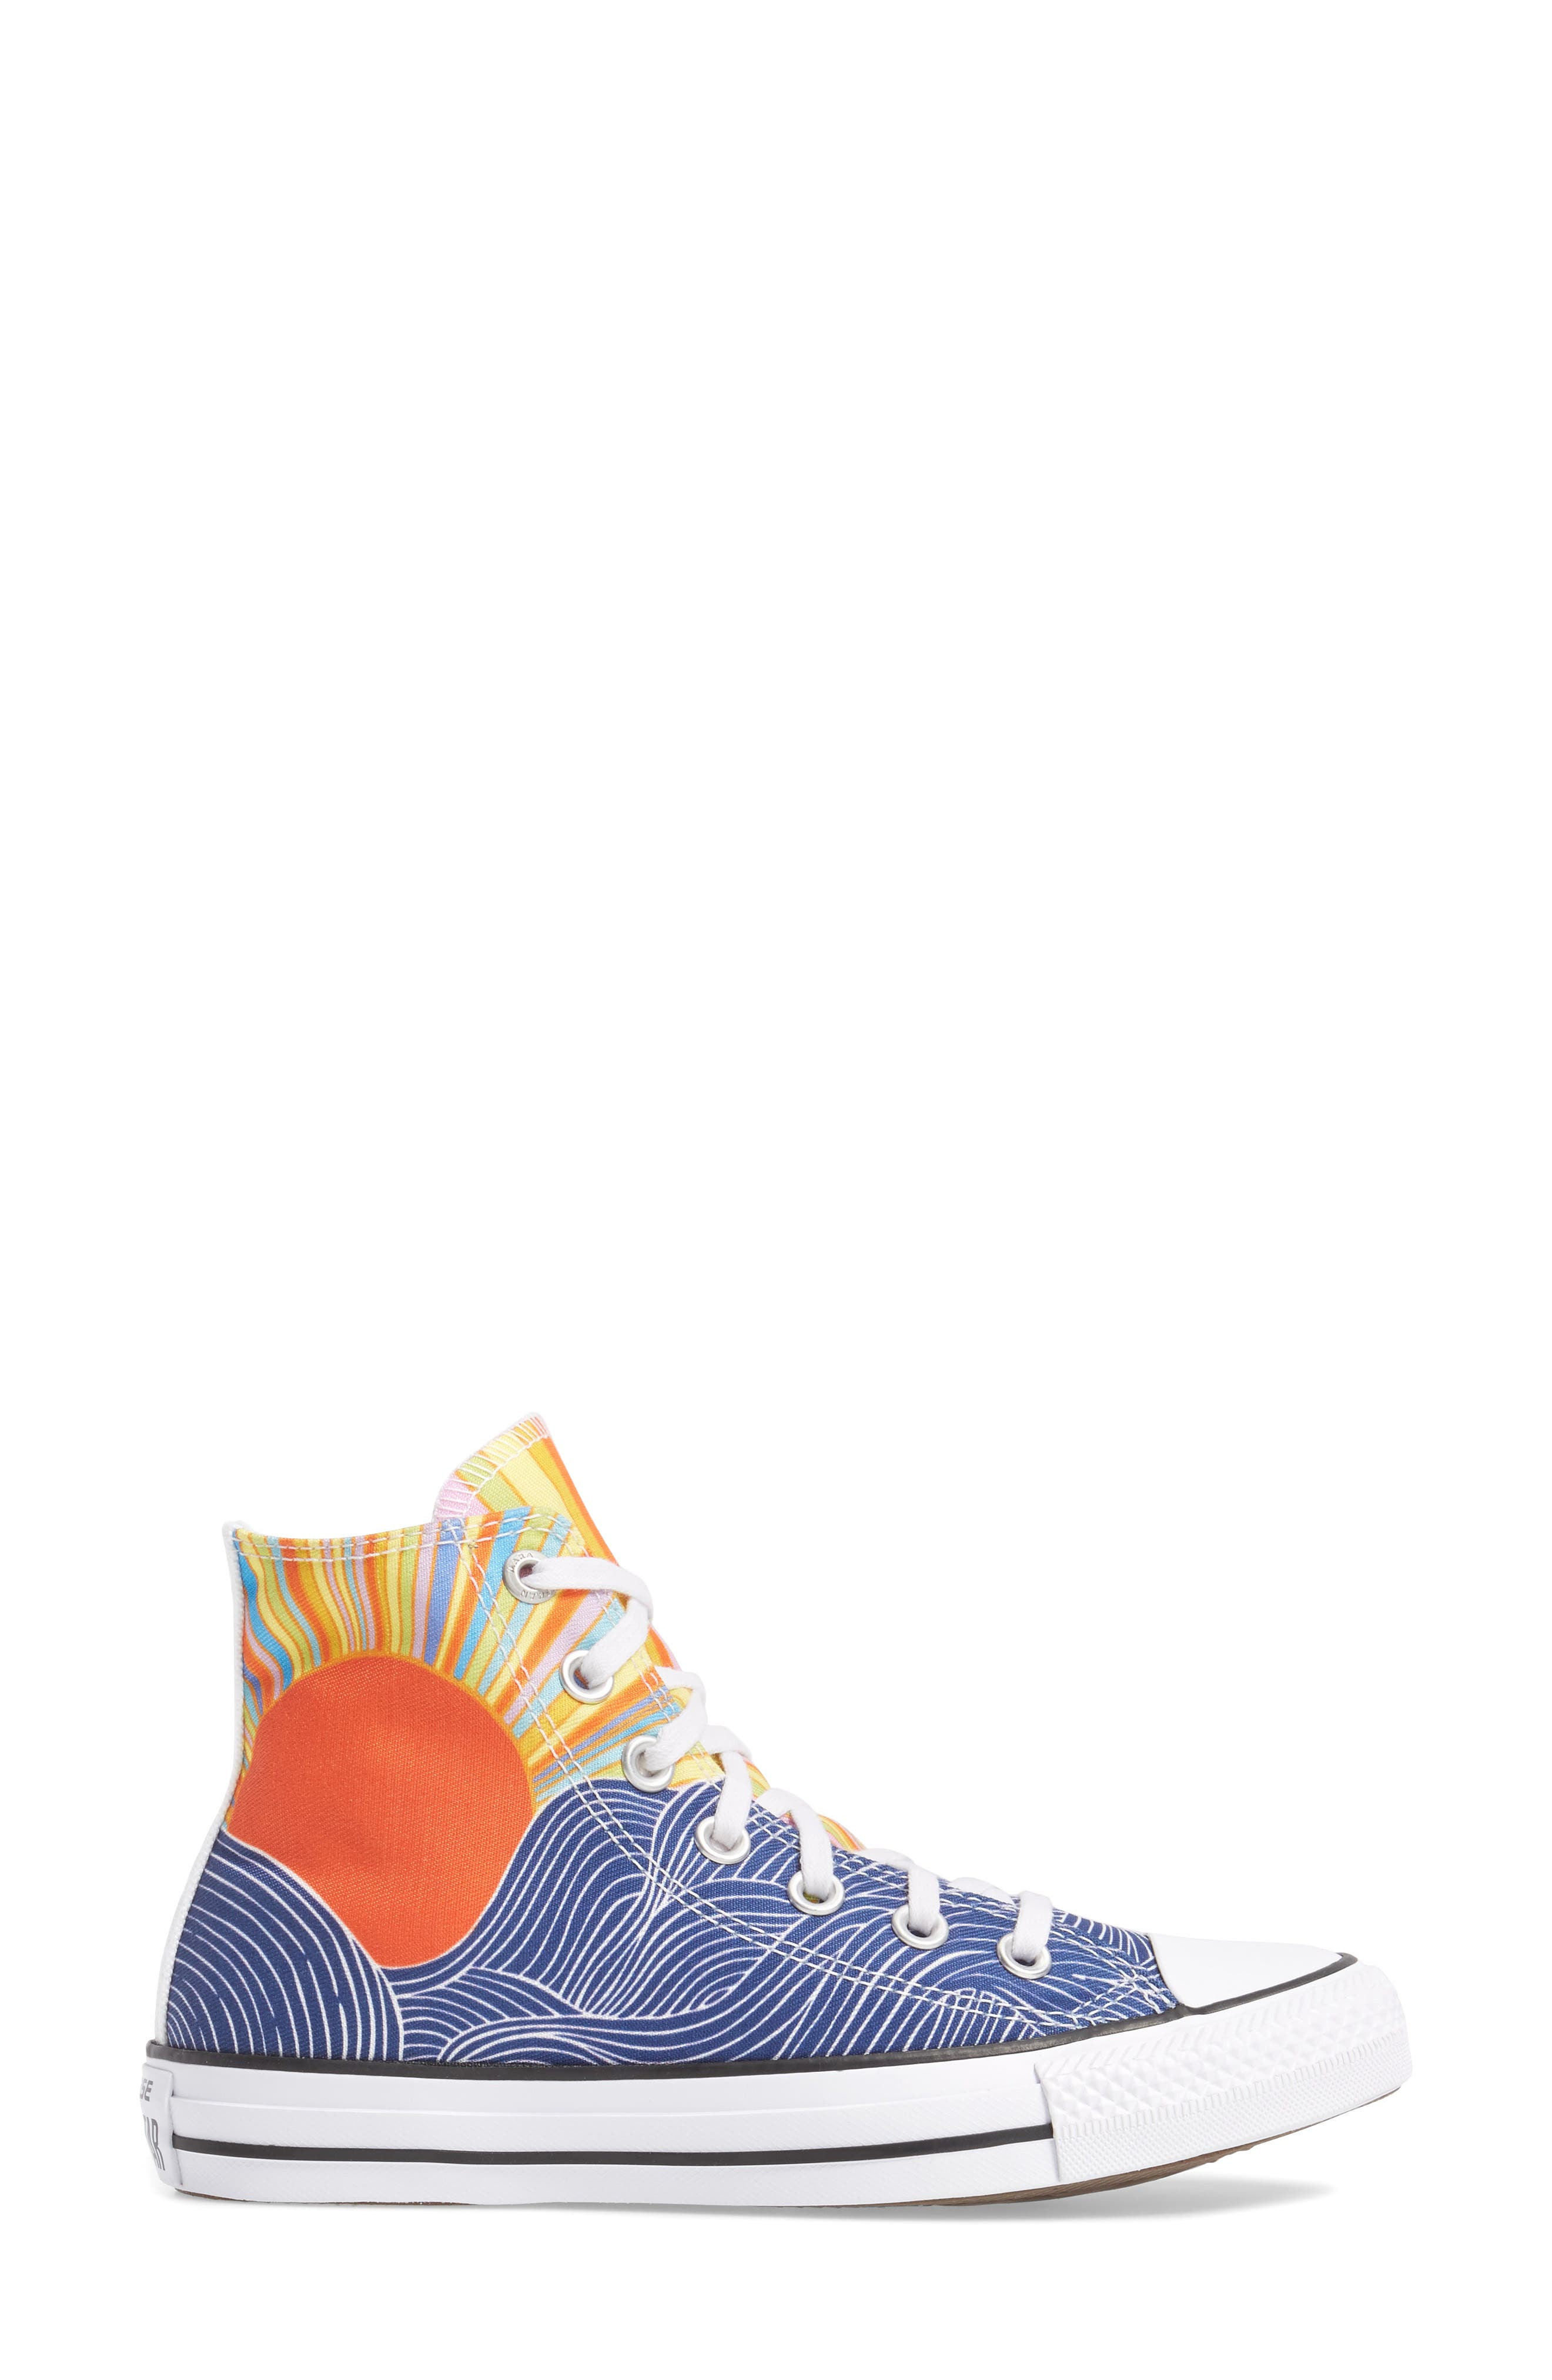 x Mara Hoffman All Star<sup>®</sup> Embroidered High Top Sneaker,                             Alternate thumbnail 5, color,